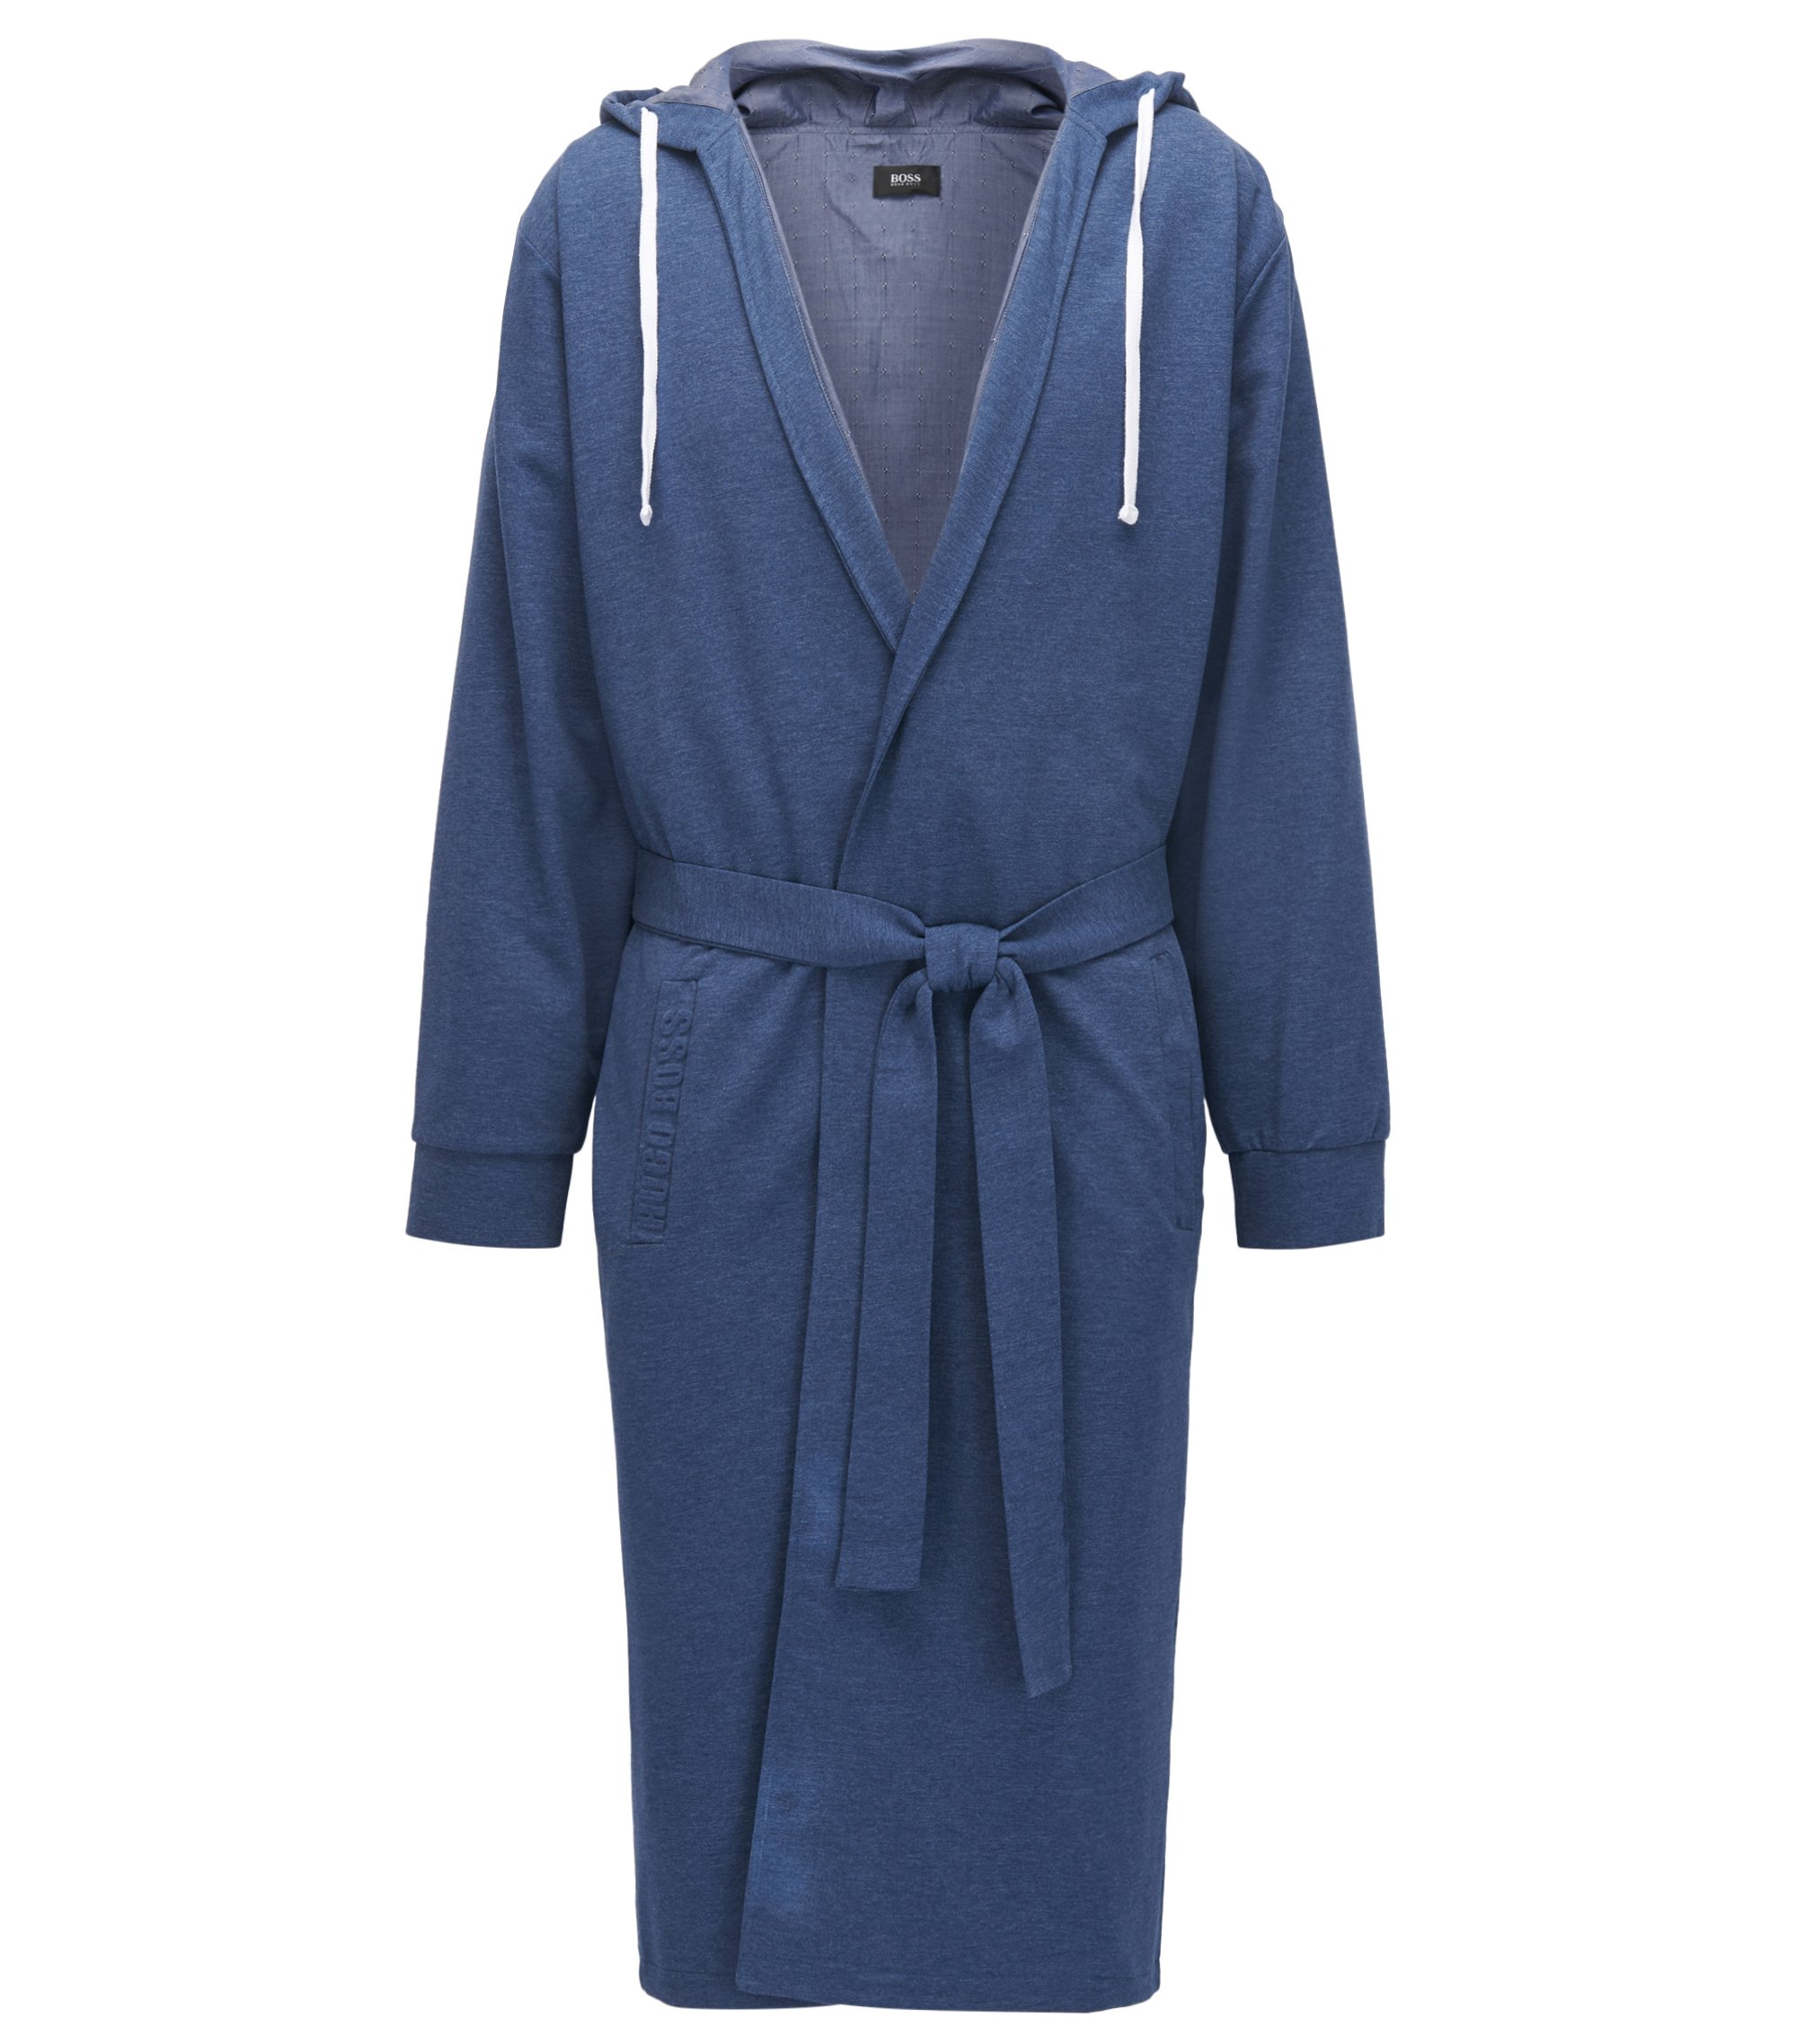 Hooded dressing gown in mélange French terry, Dark Blue